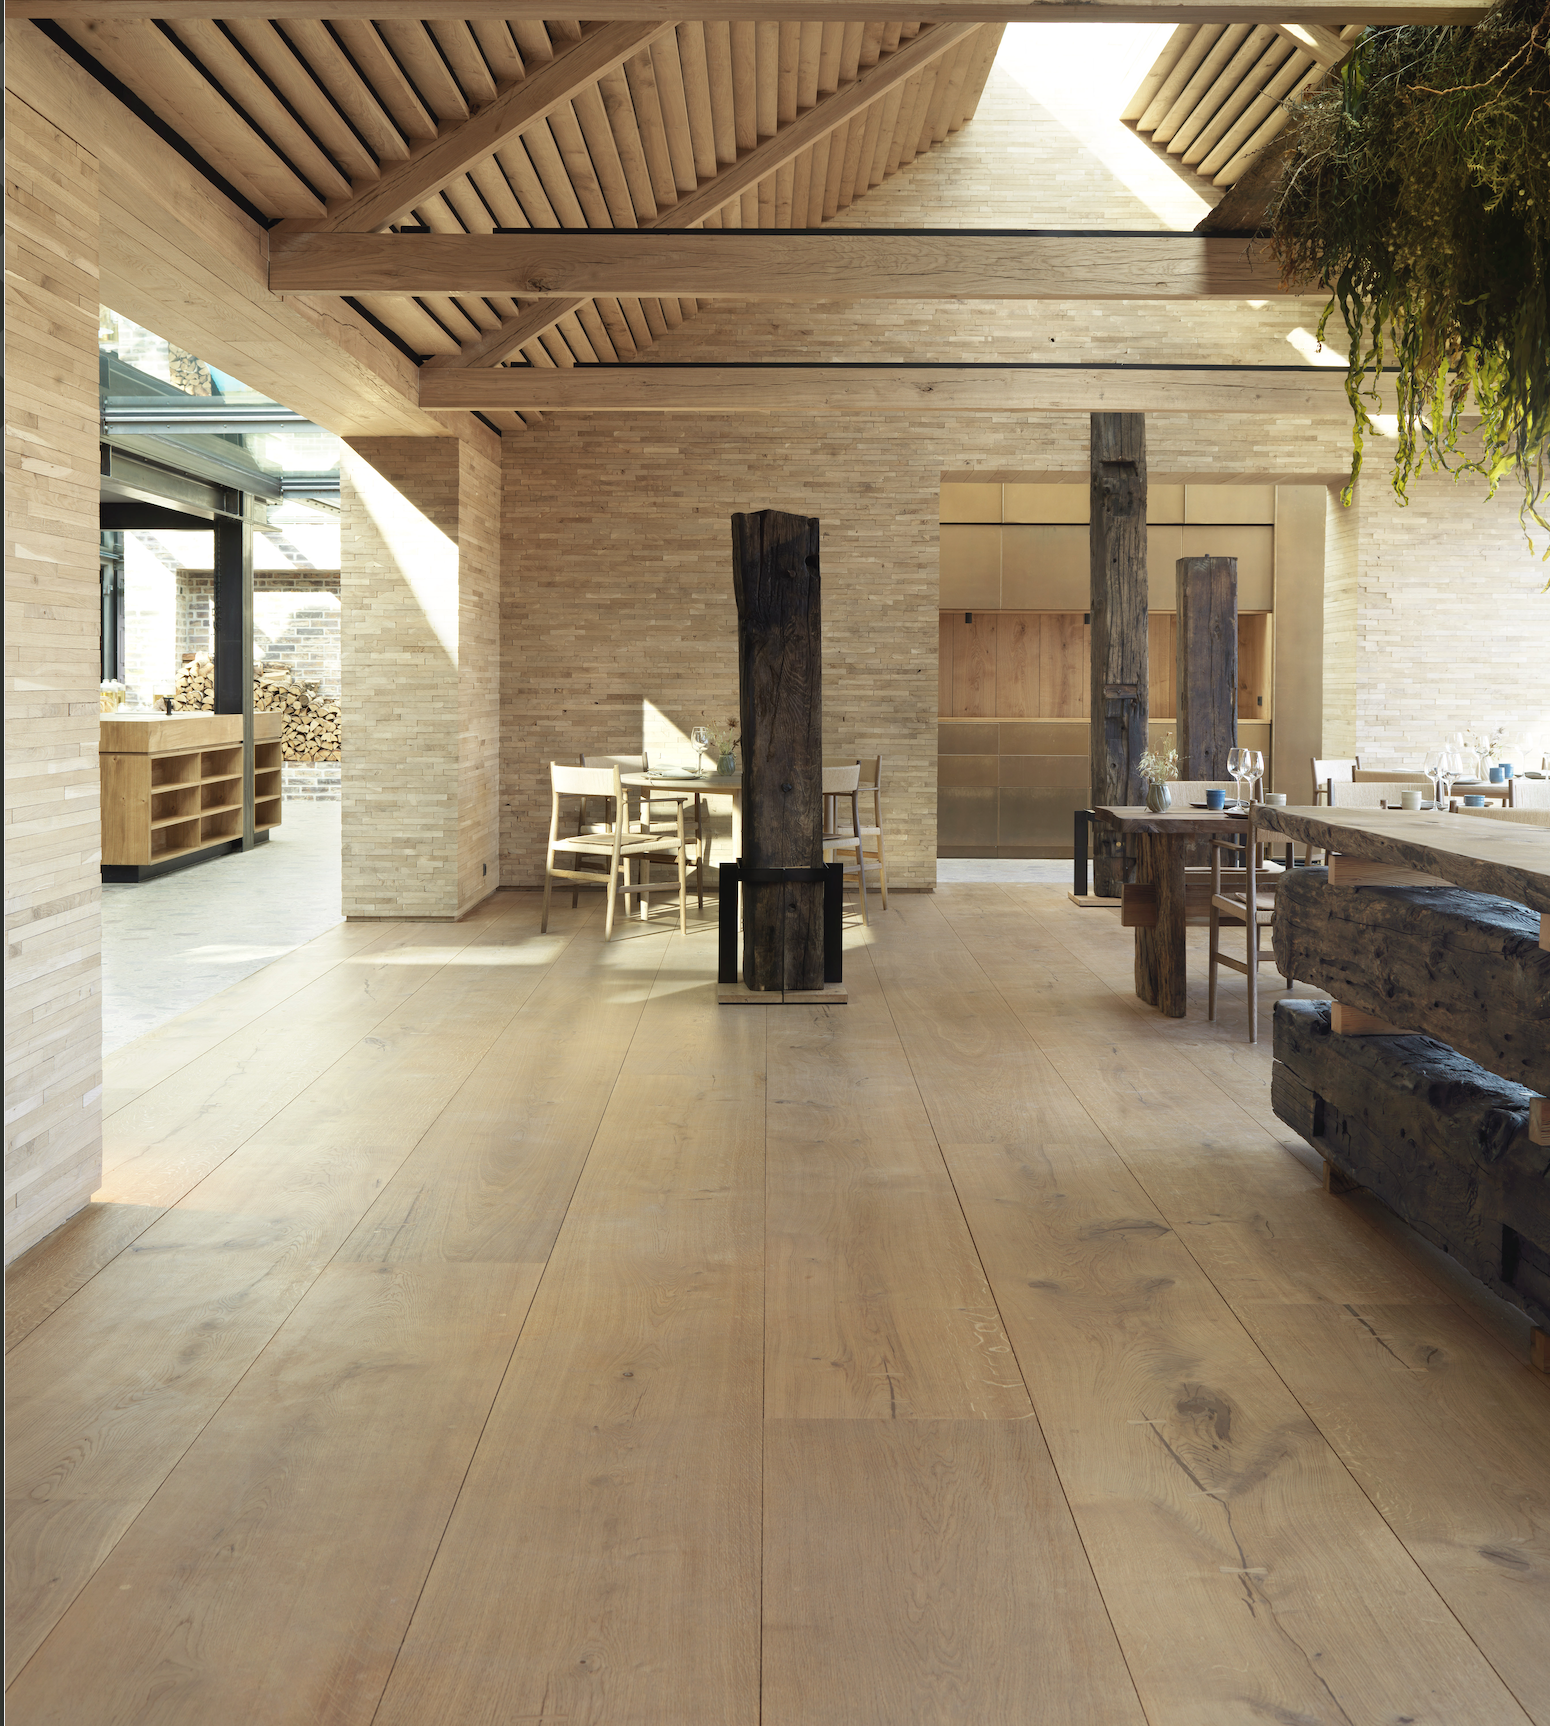 Danish company Dinesen uses Douglas fir and oak from Germany and France